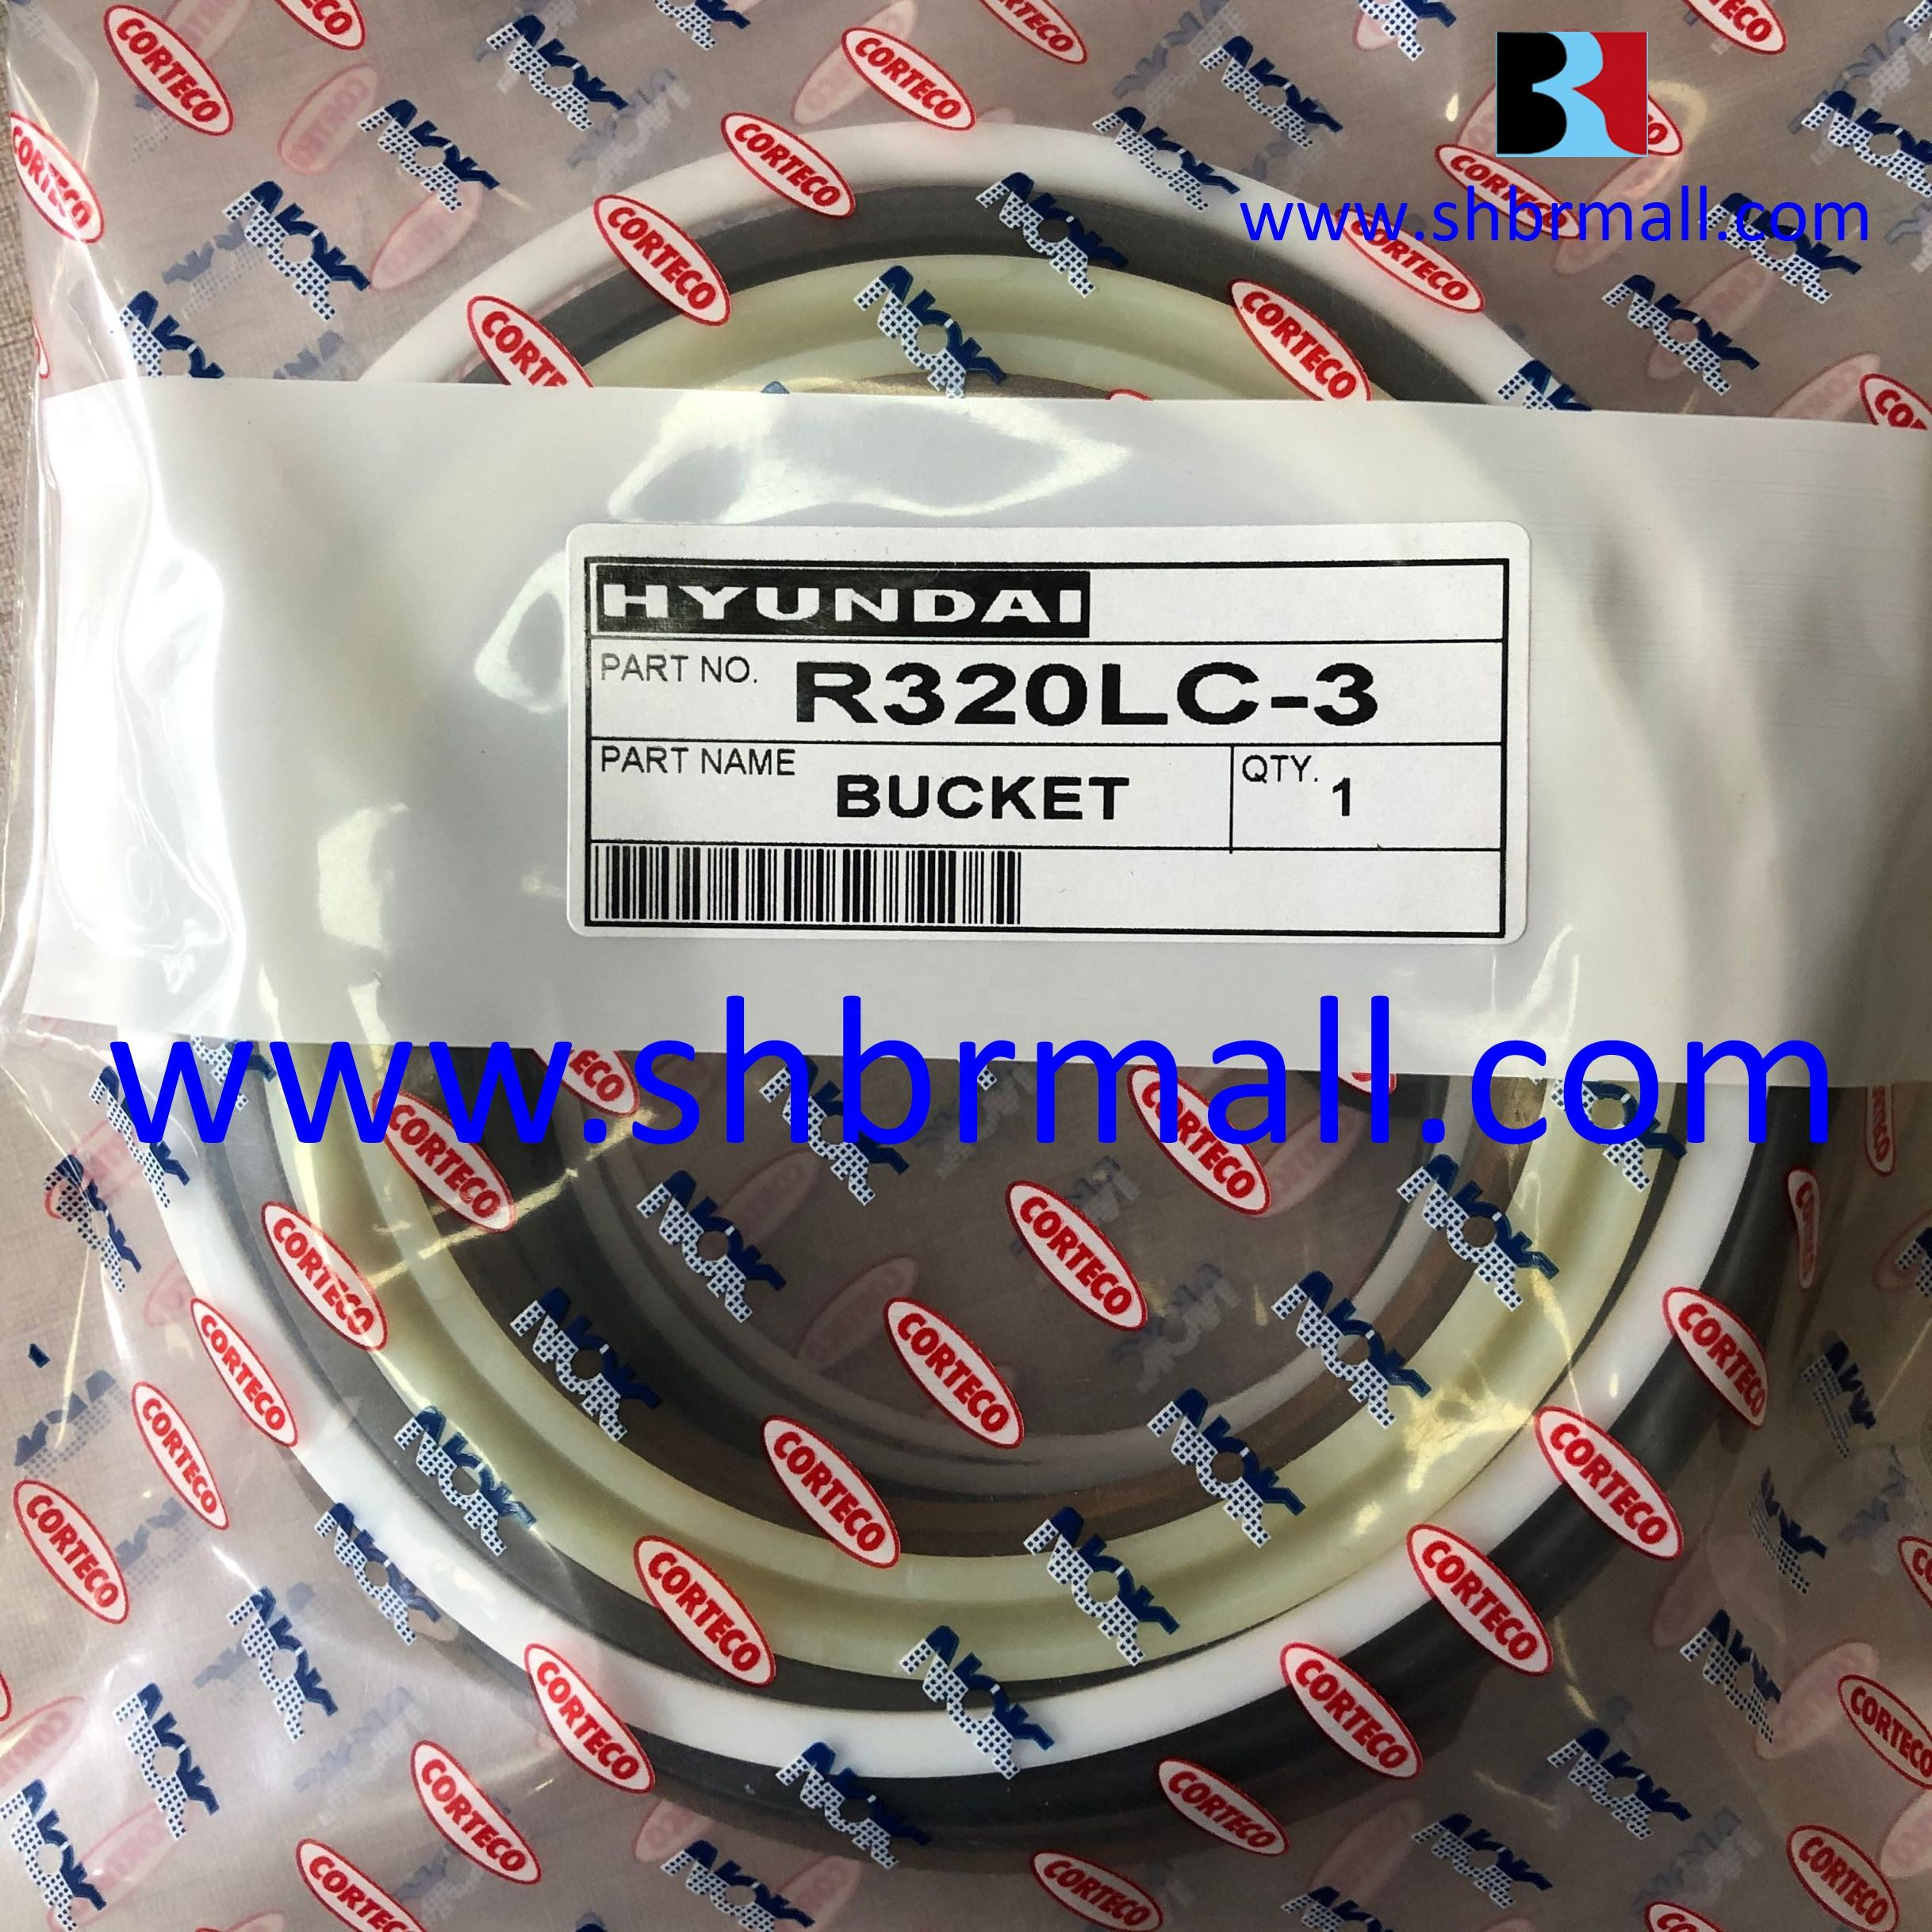 Hydraulic Cylinder Bucket Seal Kits For Hyundai R320LC-3 Excavators